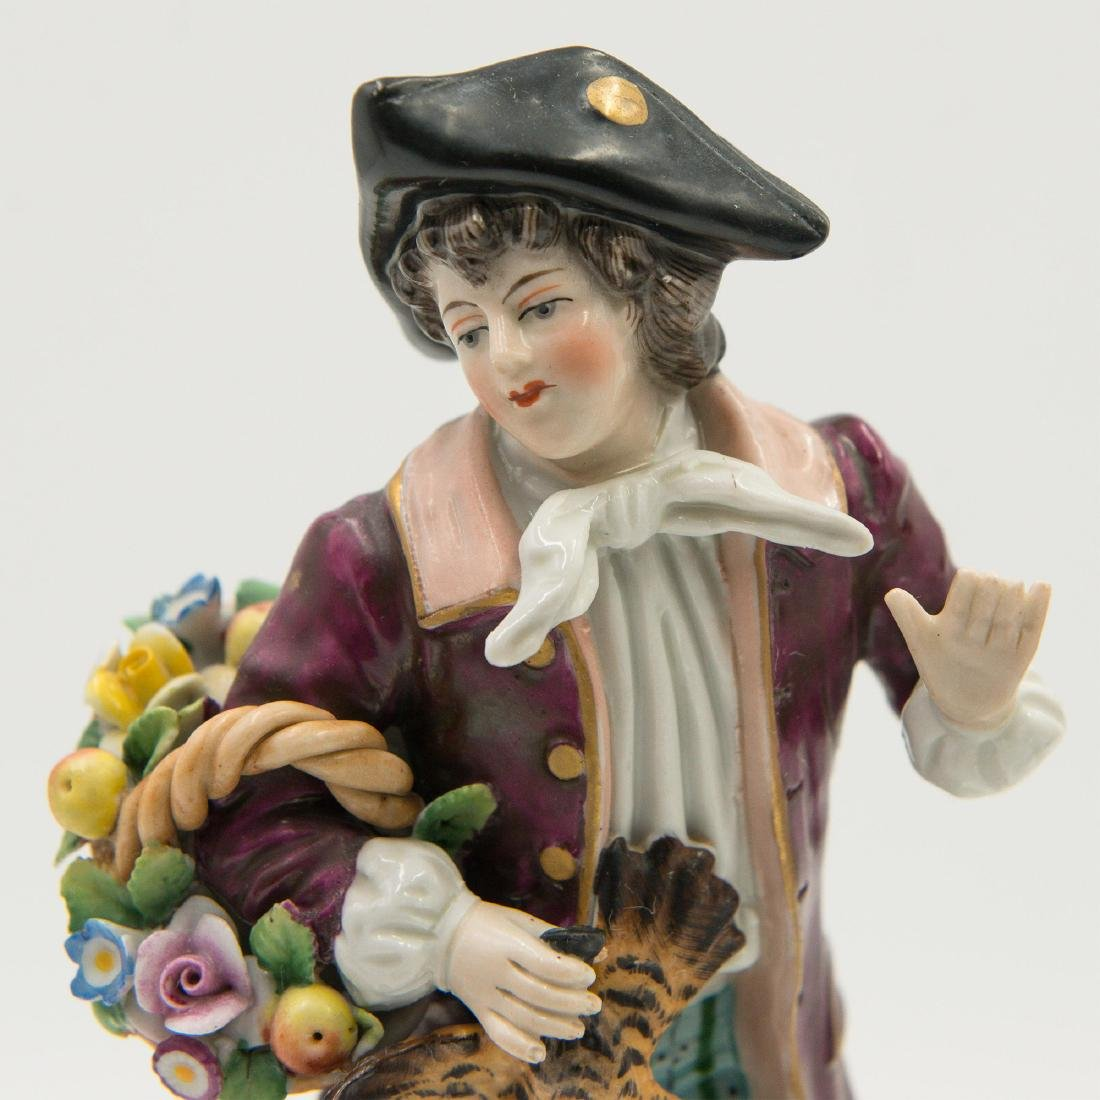 Group of 3 Sitzendorf German Porcelain Figurines - 5